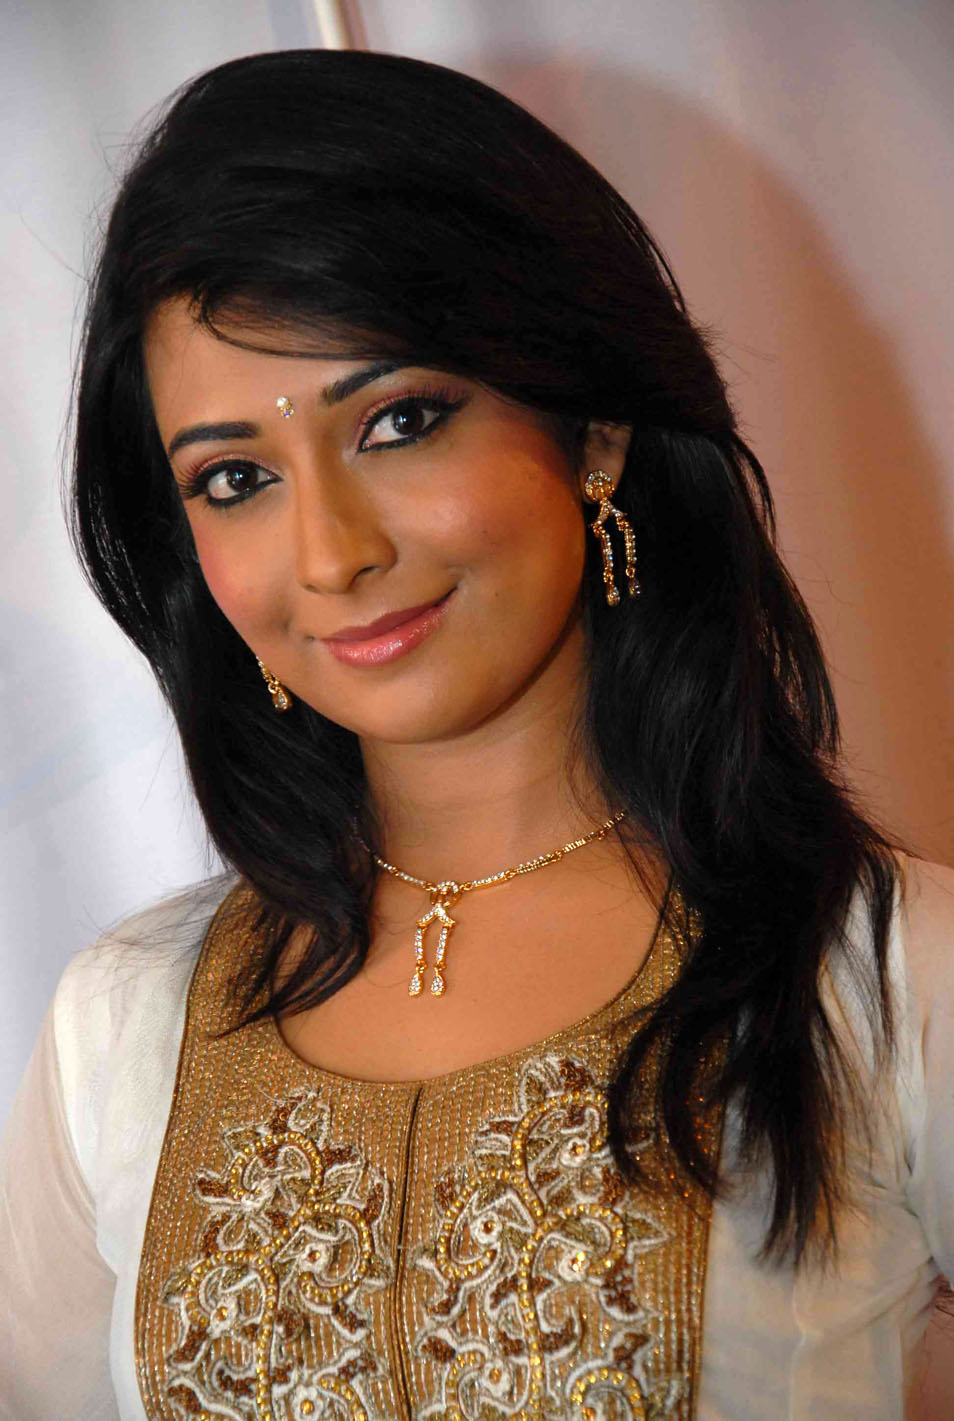 Watch Radhika Pandit video